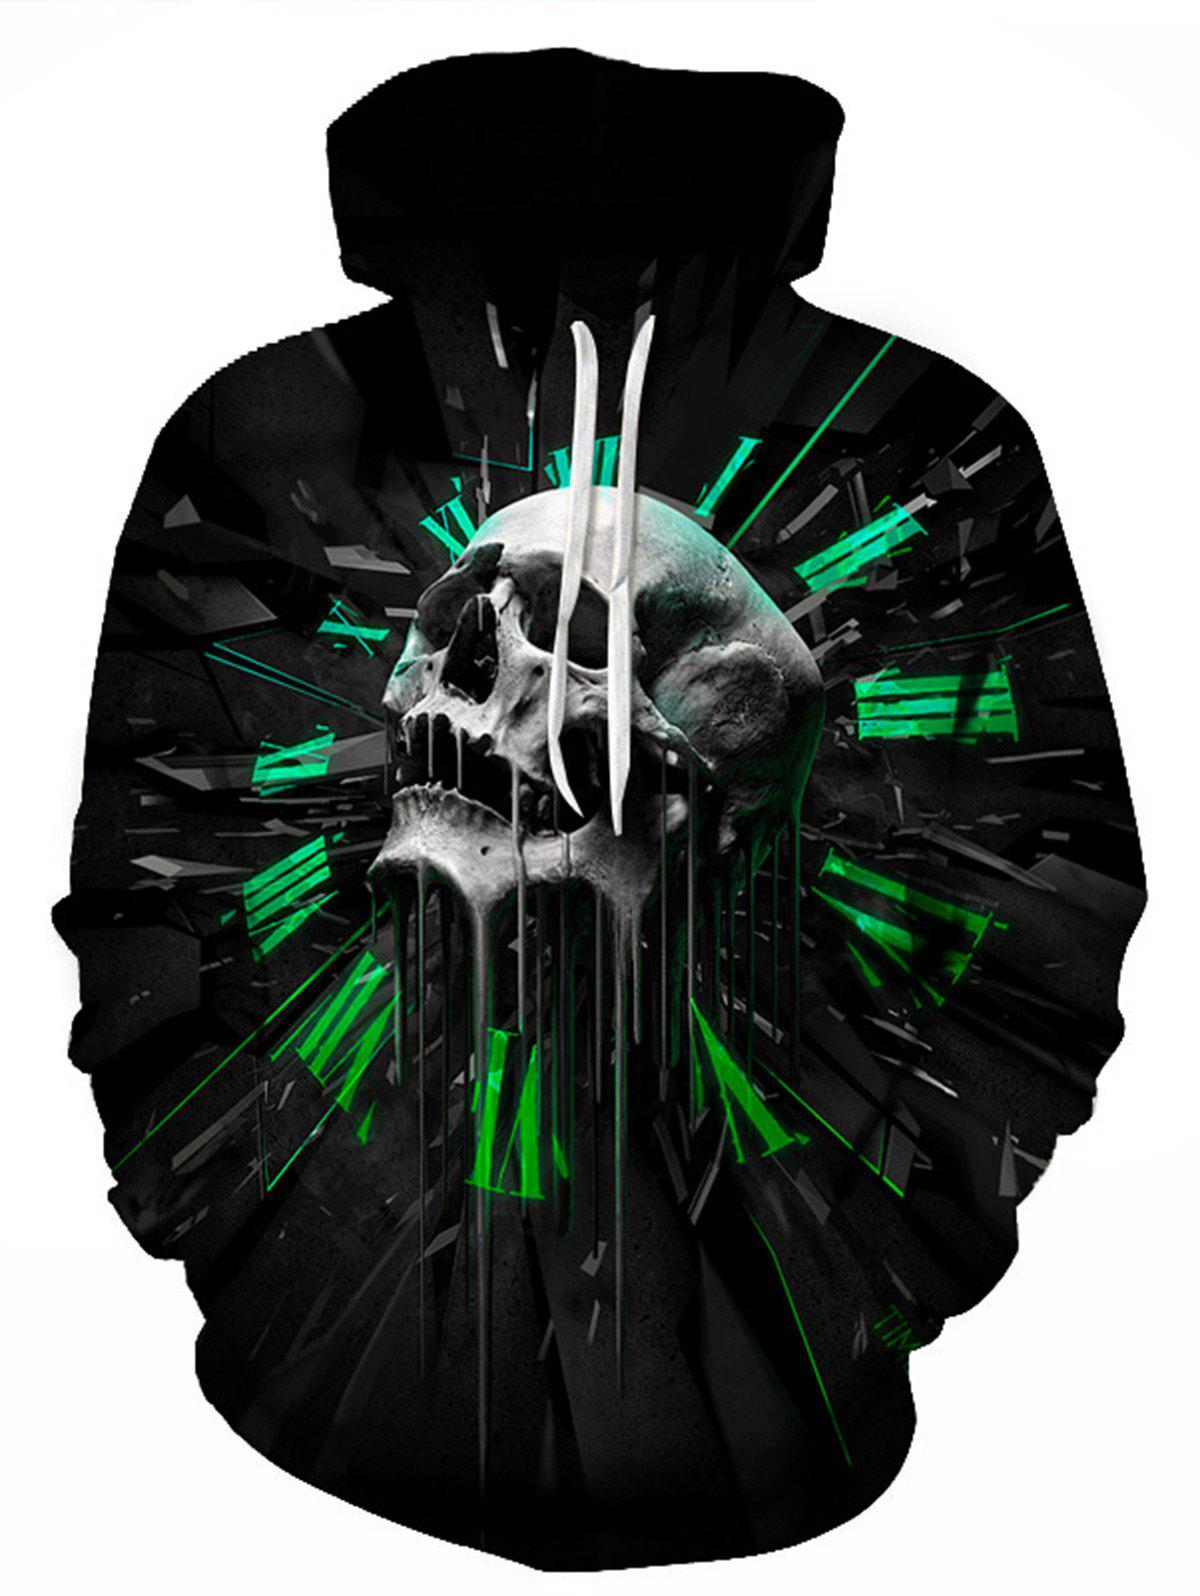 3D Skull Graphic Print Pullover HoodieMEN<br><br>Size: 3XL; Color: BLACK; Material: Cotton,Polyester; Shirt Length: Regular; Sleeve Length: Full; Style: Fashion; Weight: 0.4800kg; Package Contents: 1 x Hoodie;